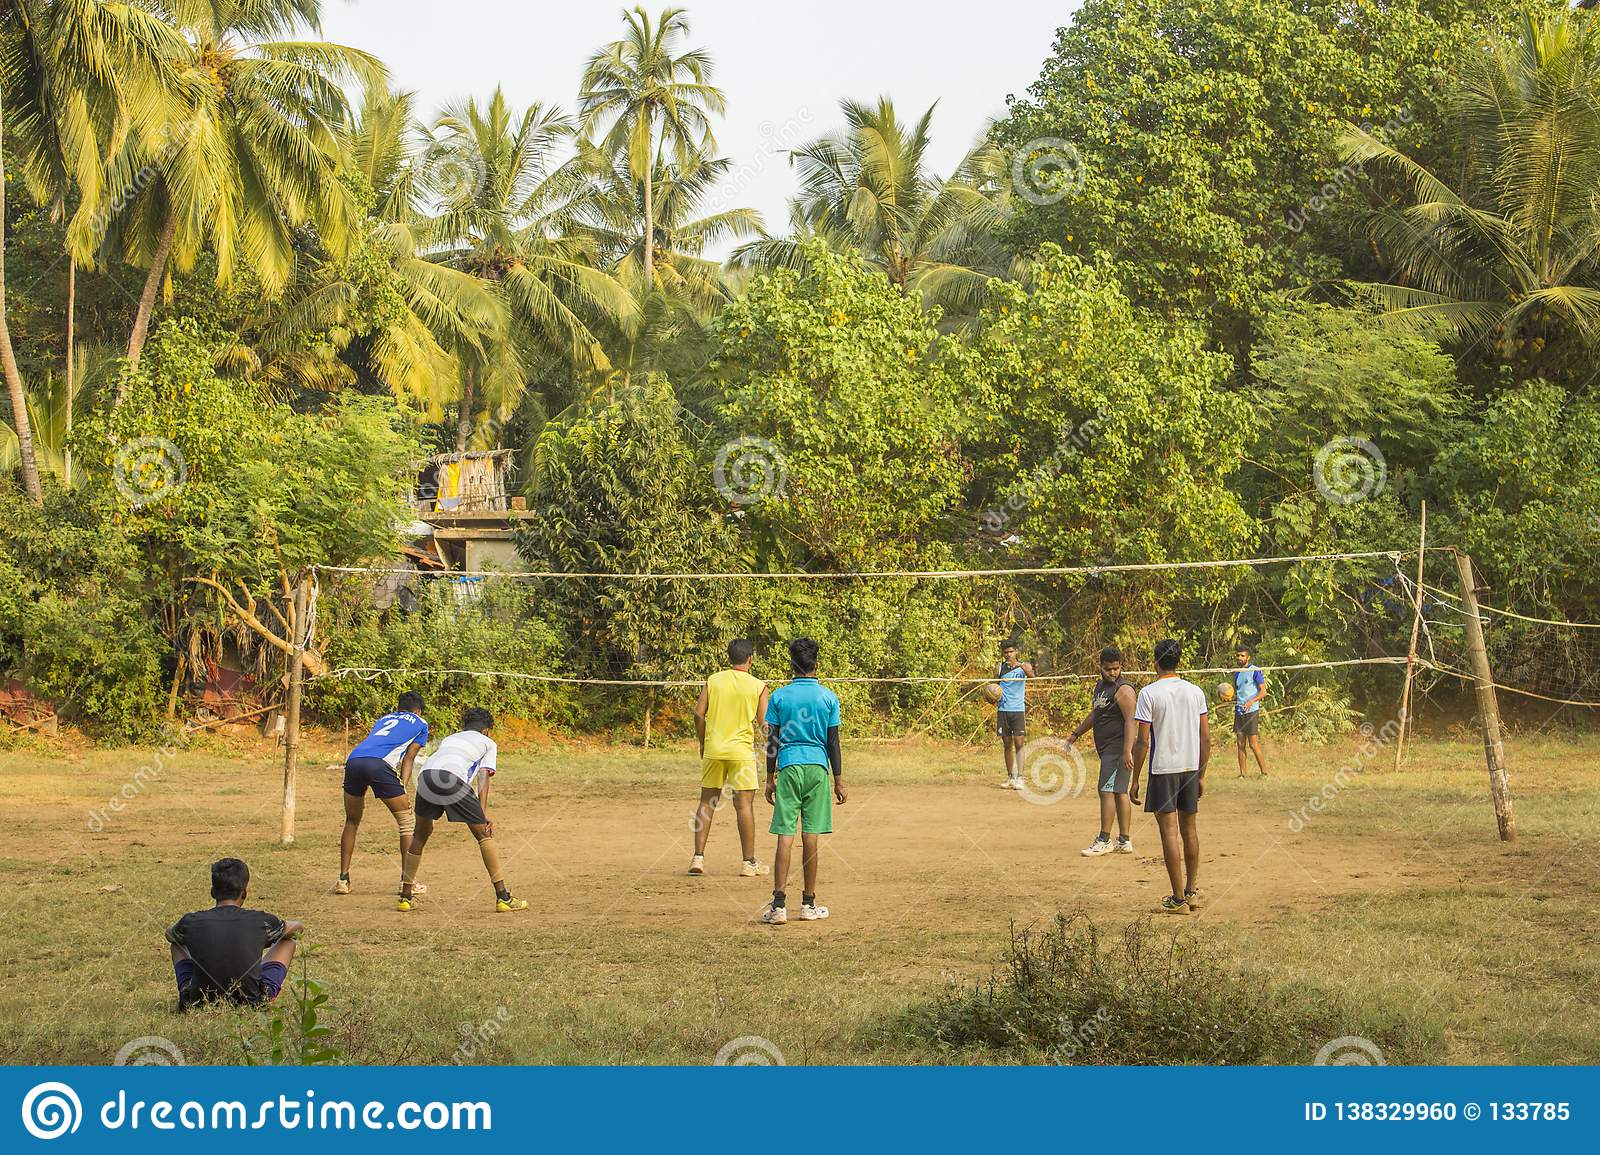 Indian guys playing volleyball outdoors on a green jungle field